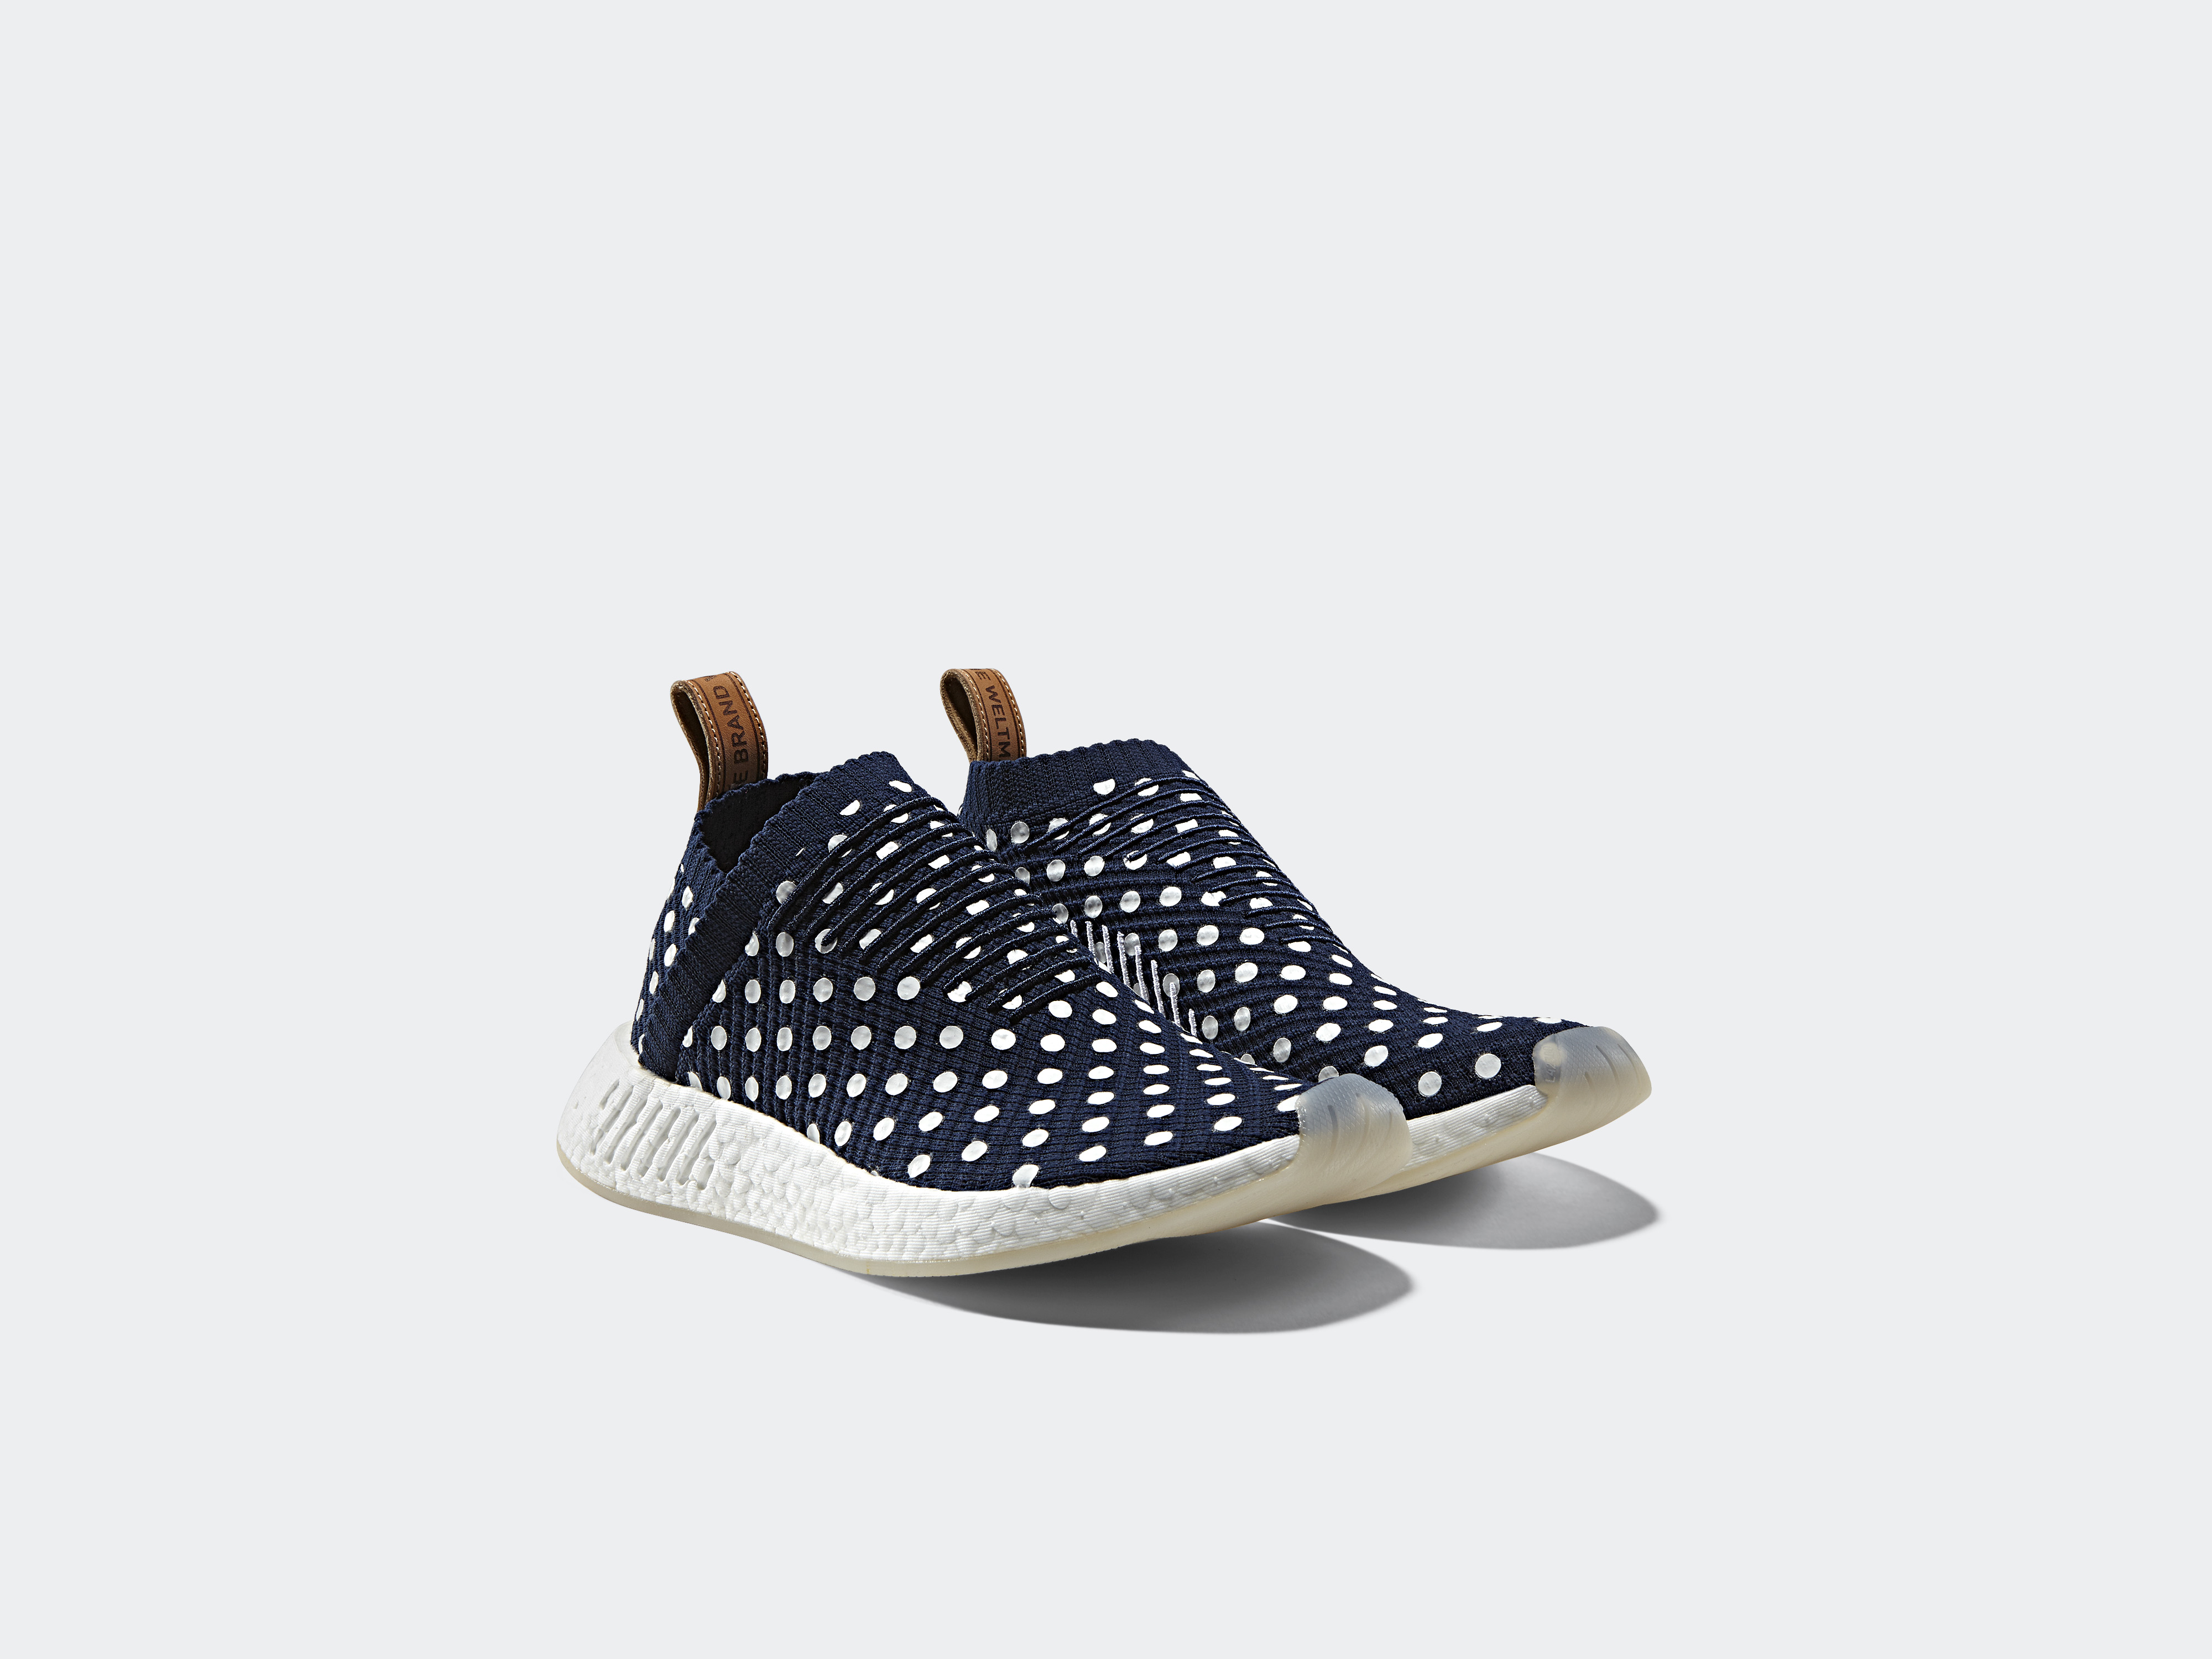 adidas NMD City Sock 2 Ronin Pack